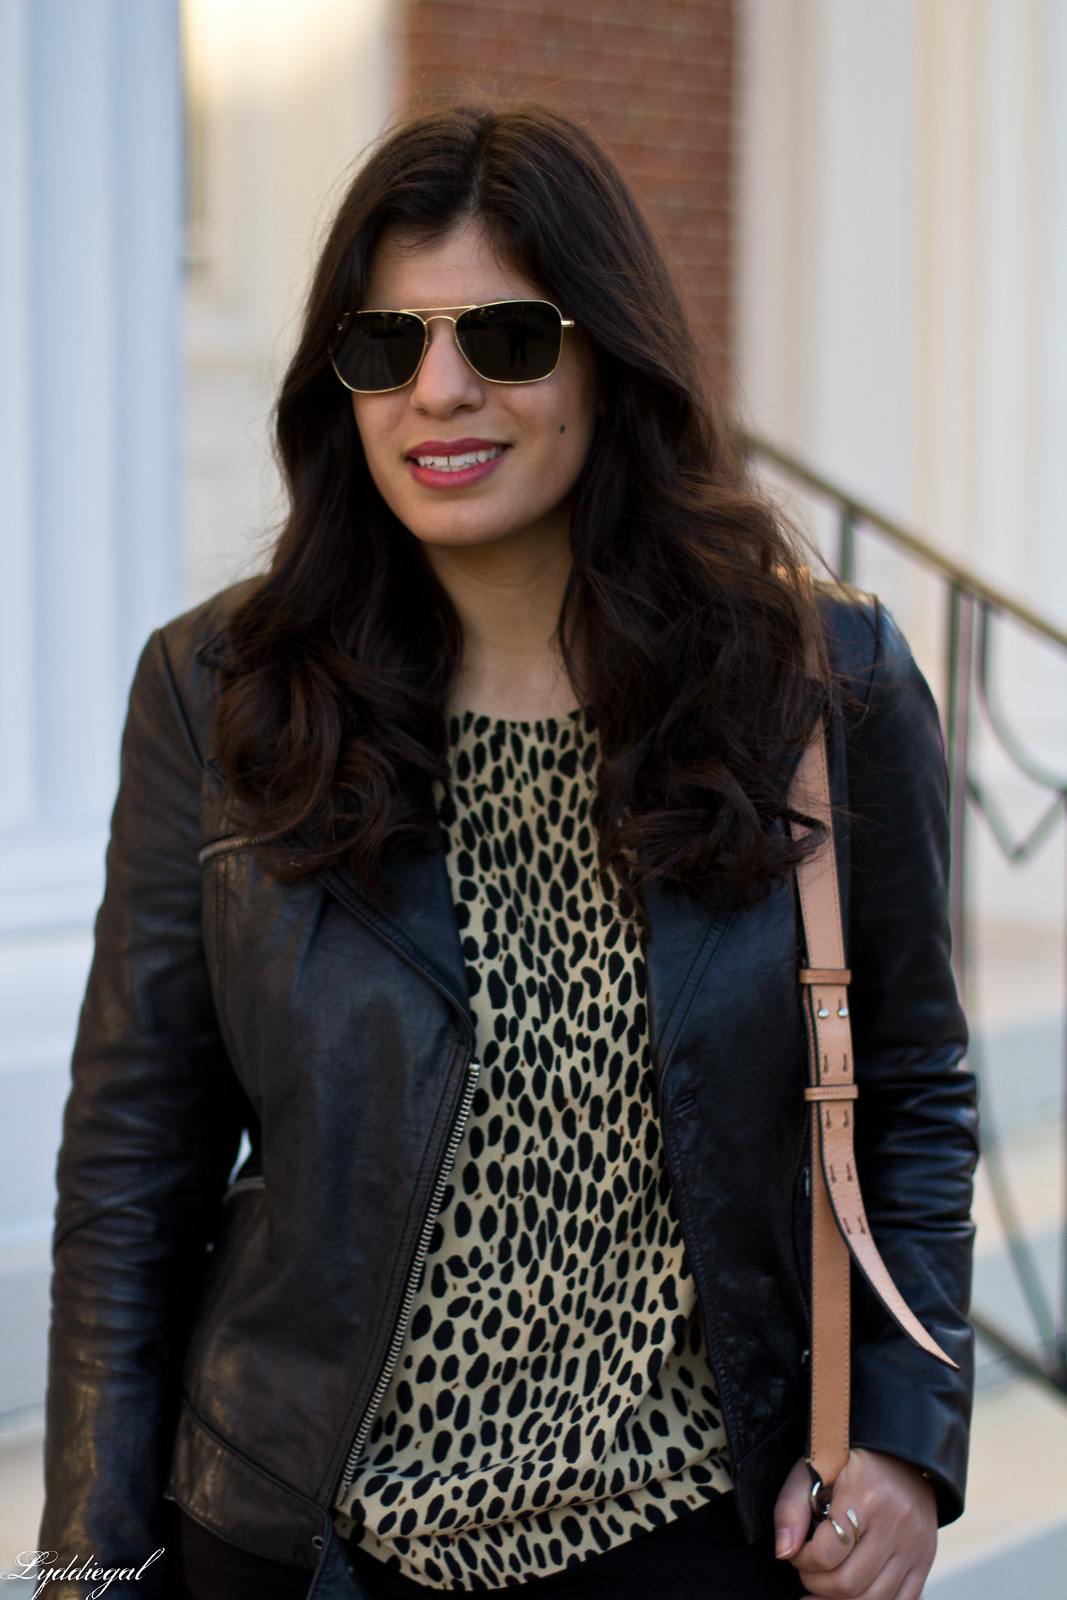 leopard print blouse, black leather jacket, black jeans-6.jpg